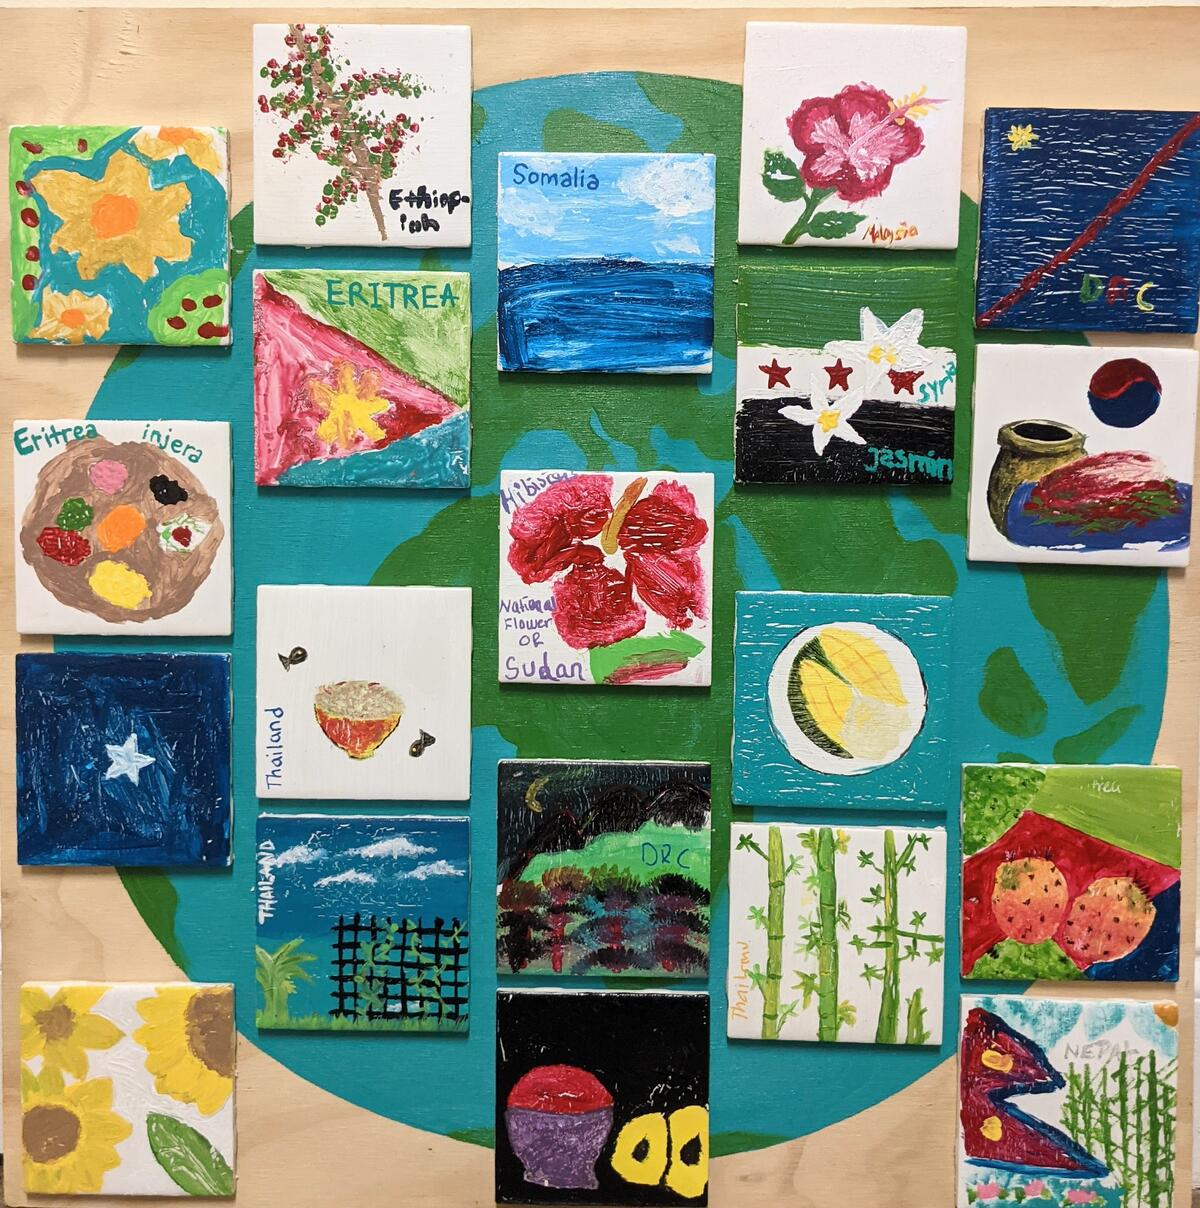 A collection of paintings by students. The images include various kinds of flowers, vines, and fruit and all the canvases are on top of a painting of the globe.